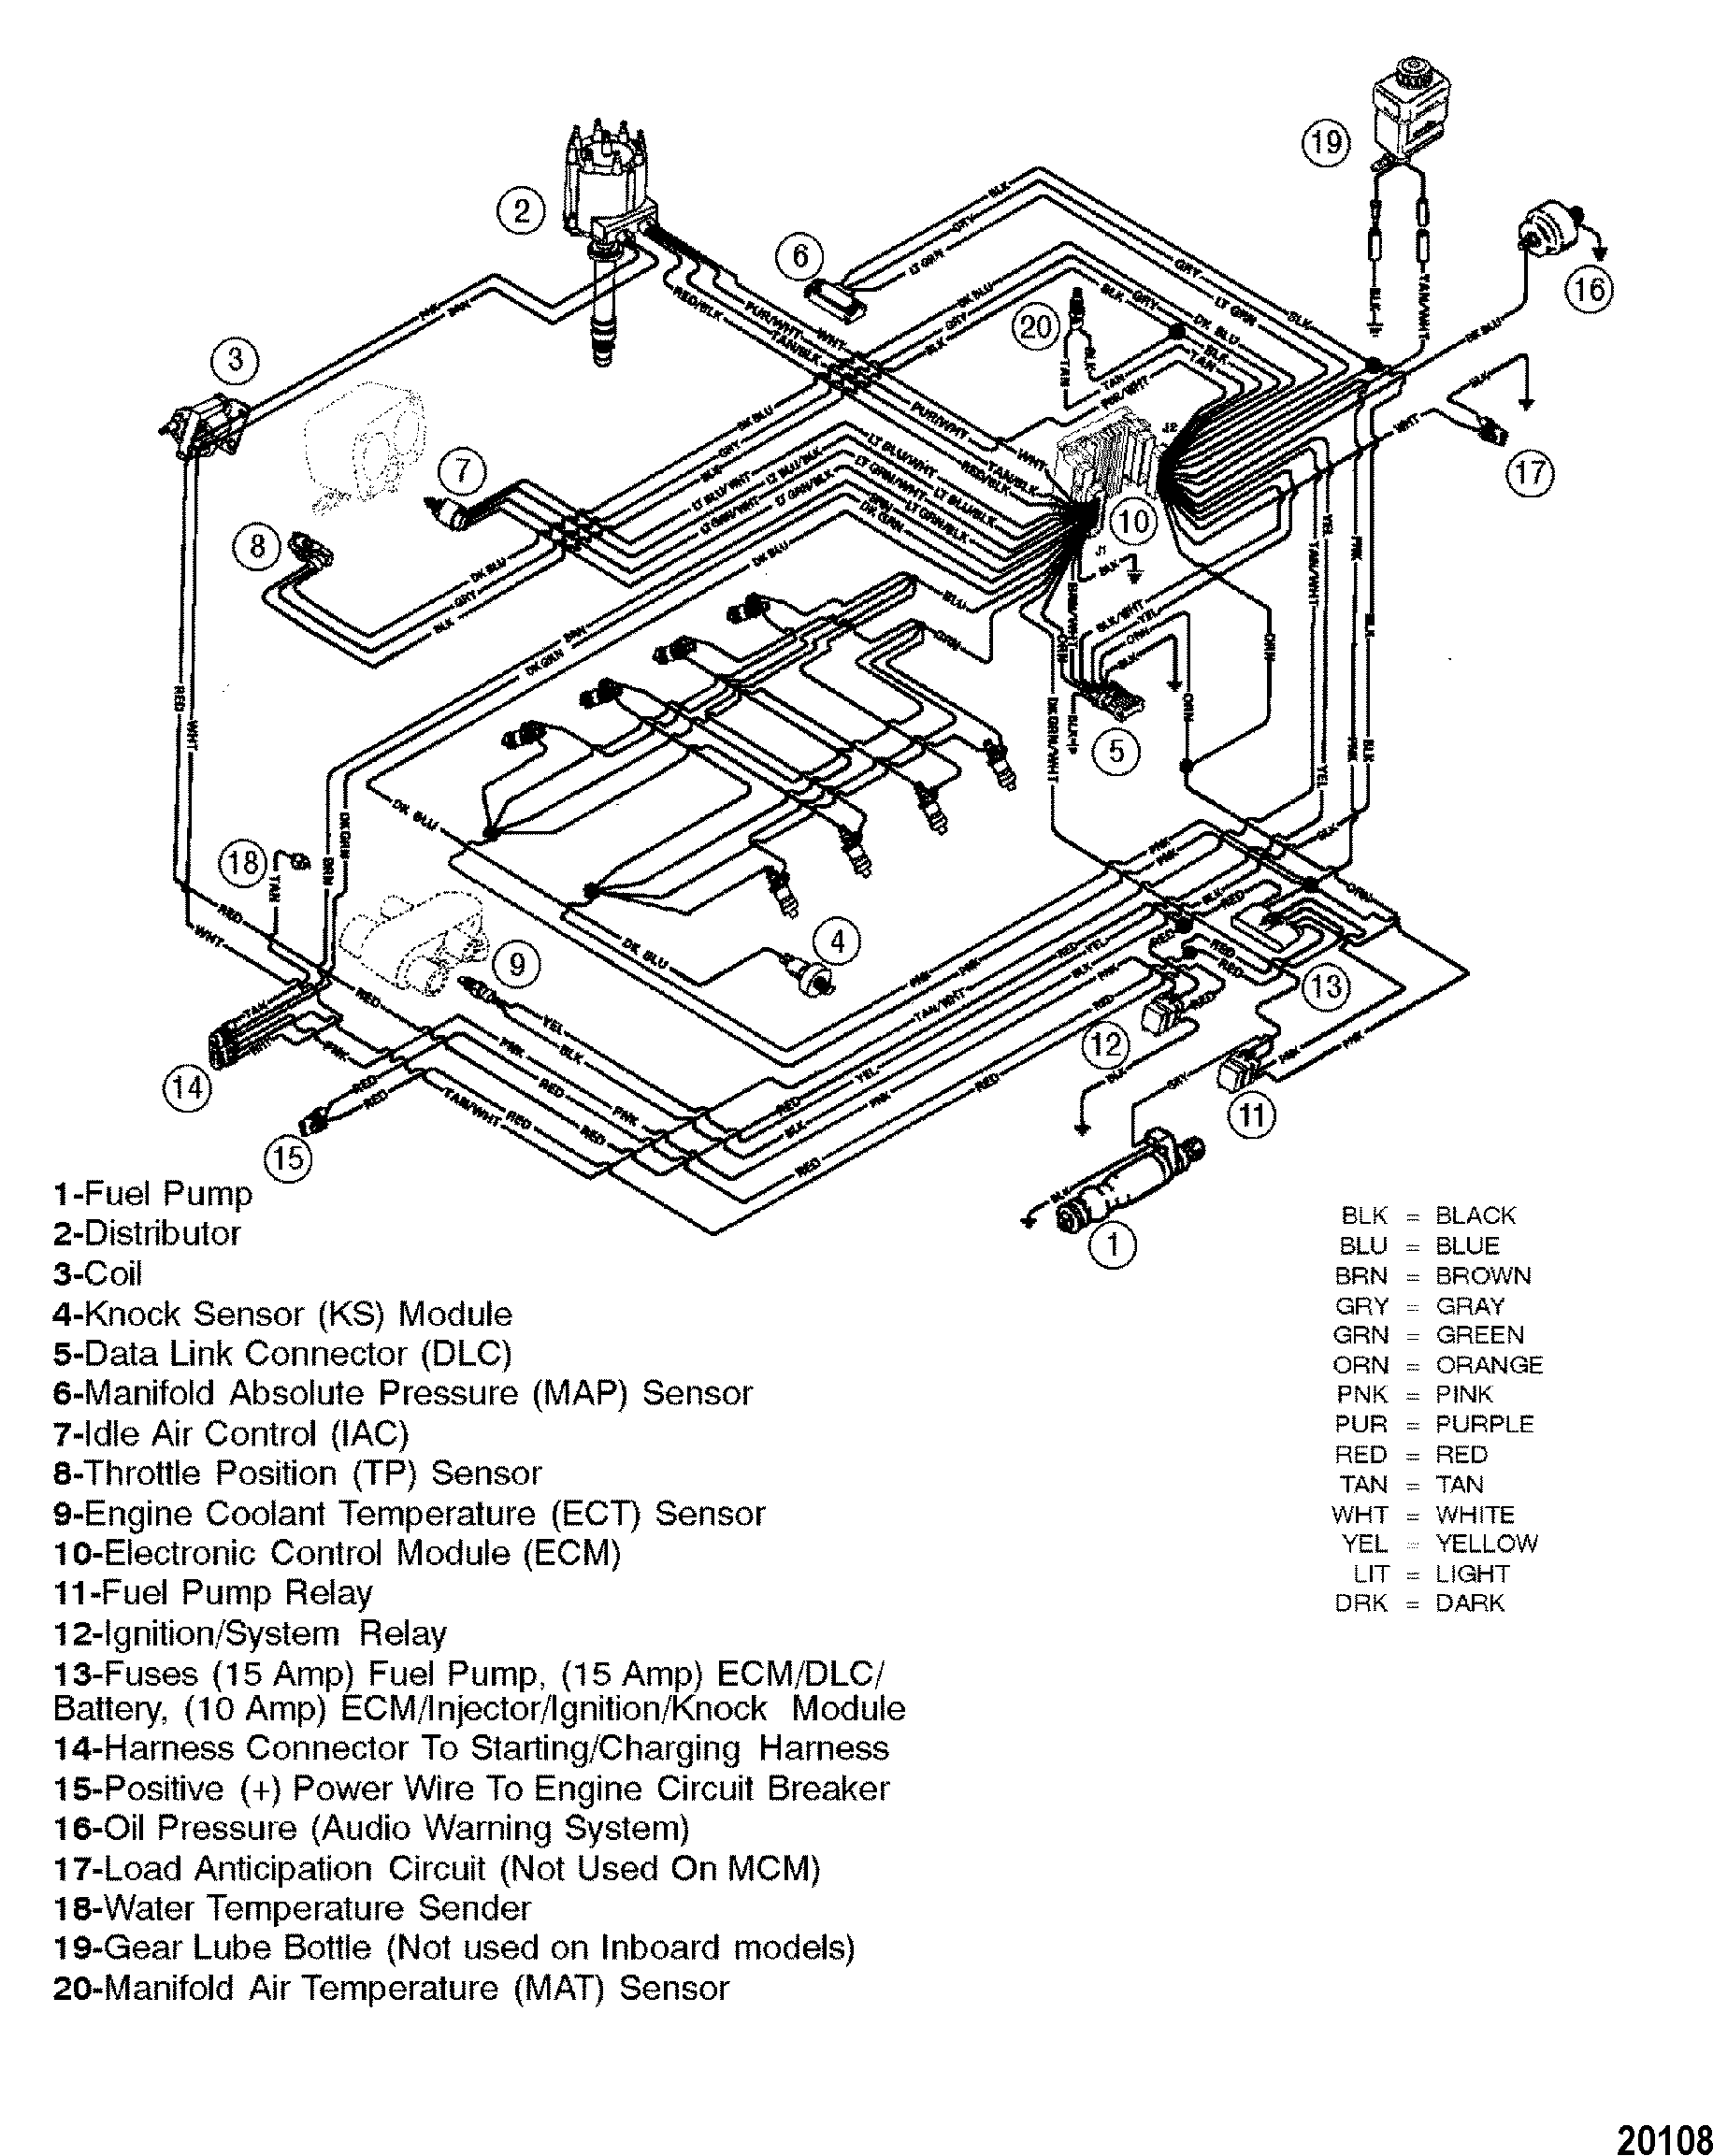 cp performance wiring harness efi section drawing hover or click to view larger